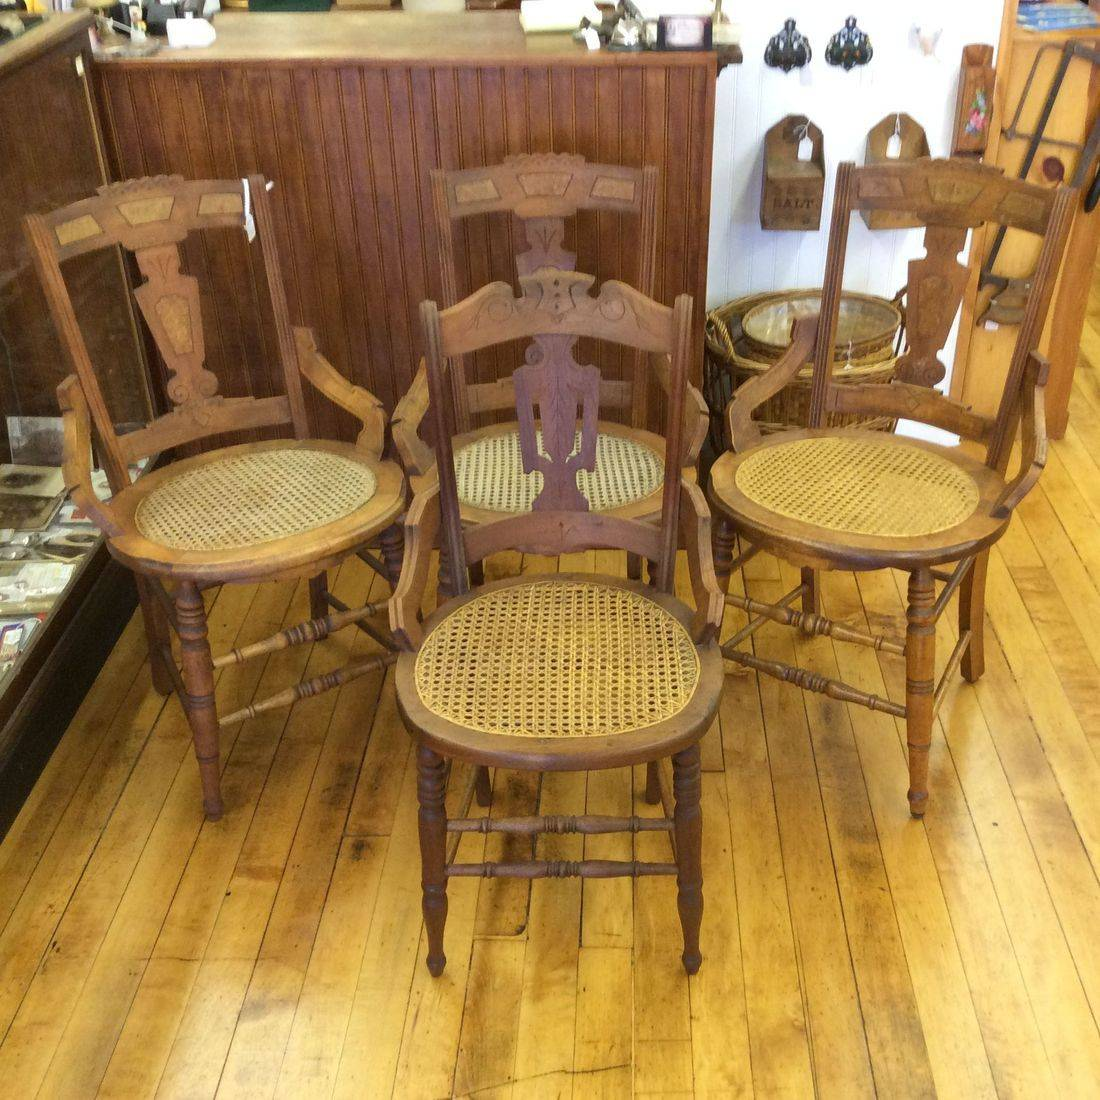 1890-1910 Eastlake Walnut Chairs w/Burled Backs and Cane Seats   $30.00 each